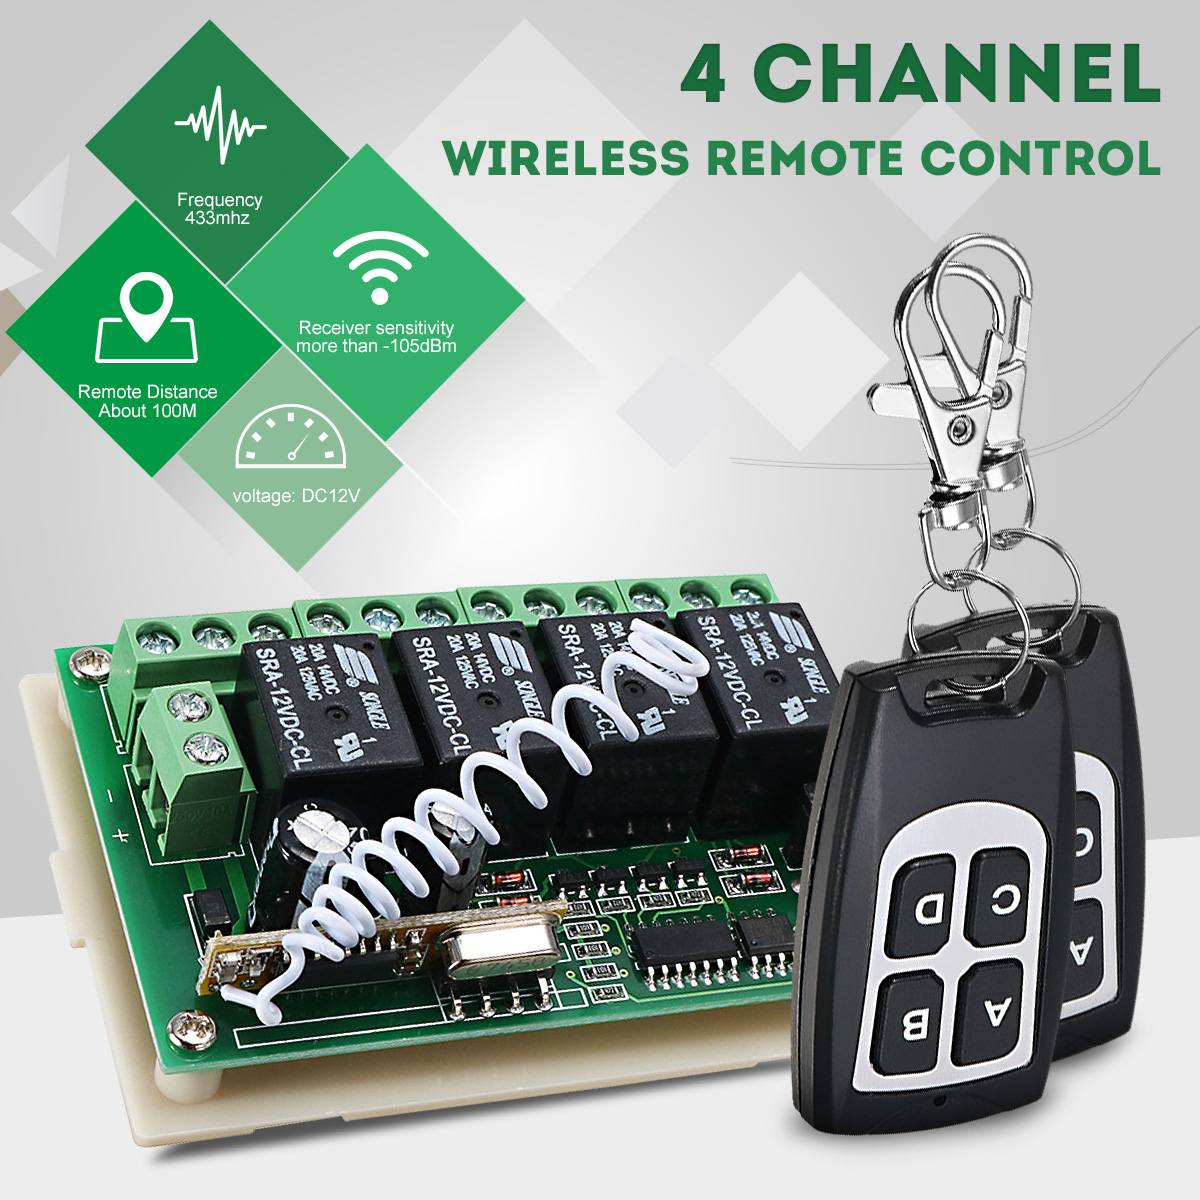 CLAITE 12V 4CH Channel 433Mhz Wireless Remote Control Switch Integrated Circuit With 2 Transmitter DIY Replace Parts Tool Kits(China)